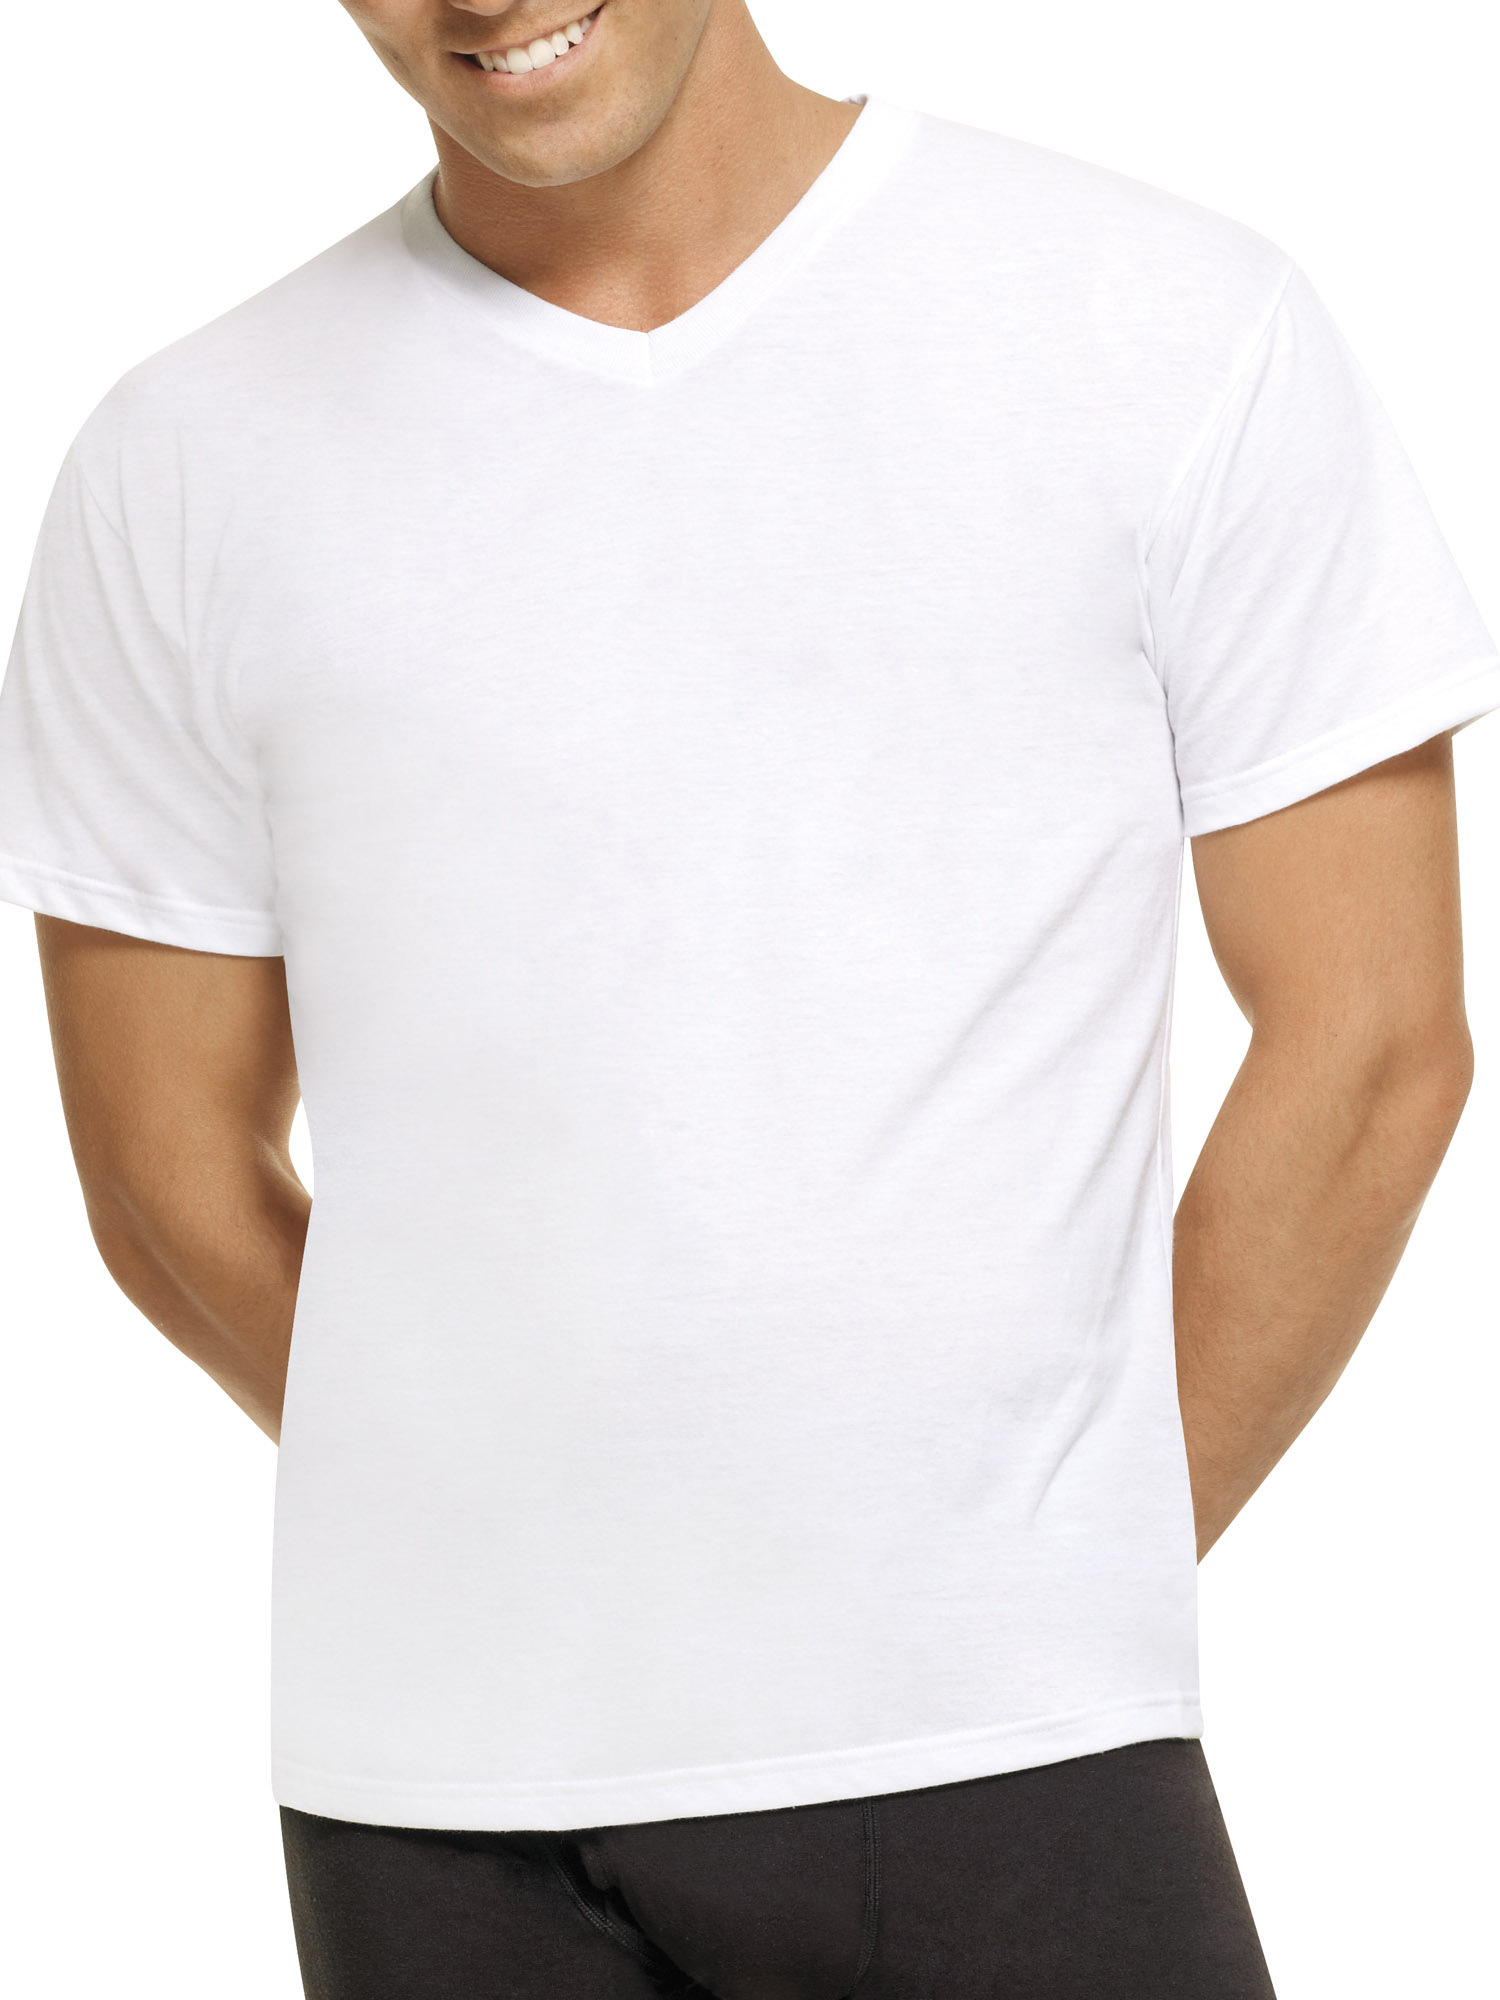 Mens ComfortBlend White V-Neck T-Shirts, 5 Pack